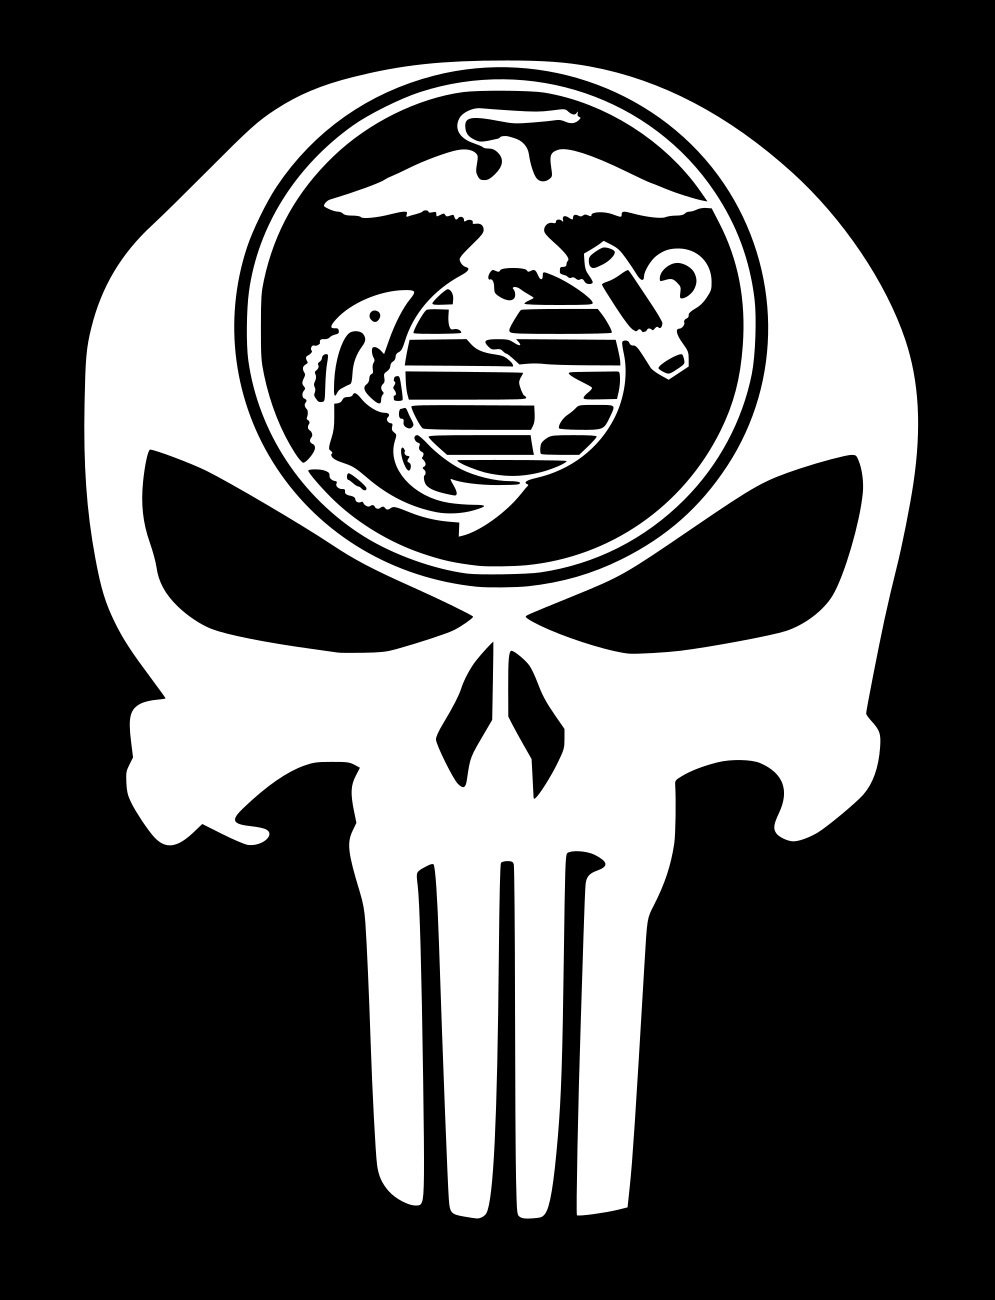 Ur impressions marine eagle globe anchor punisher skull decal vinyl sticker graphics for car truck suv van wall window laptopwhite5 5 x 4 3 inchuri330